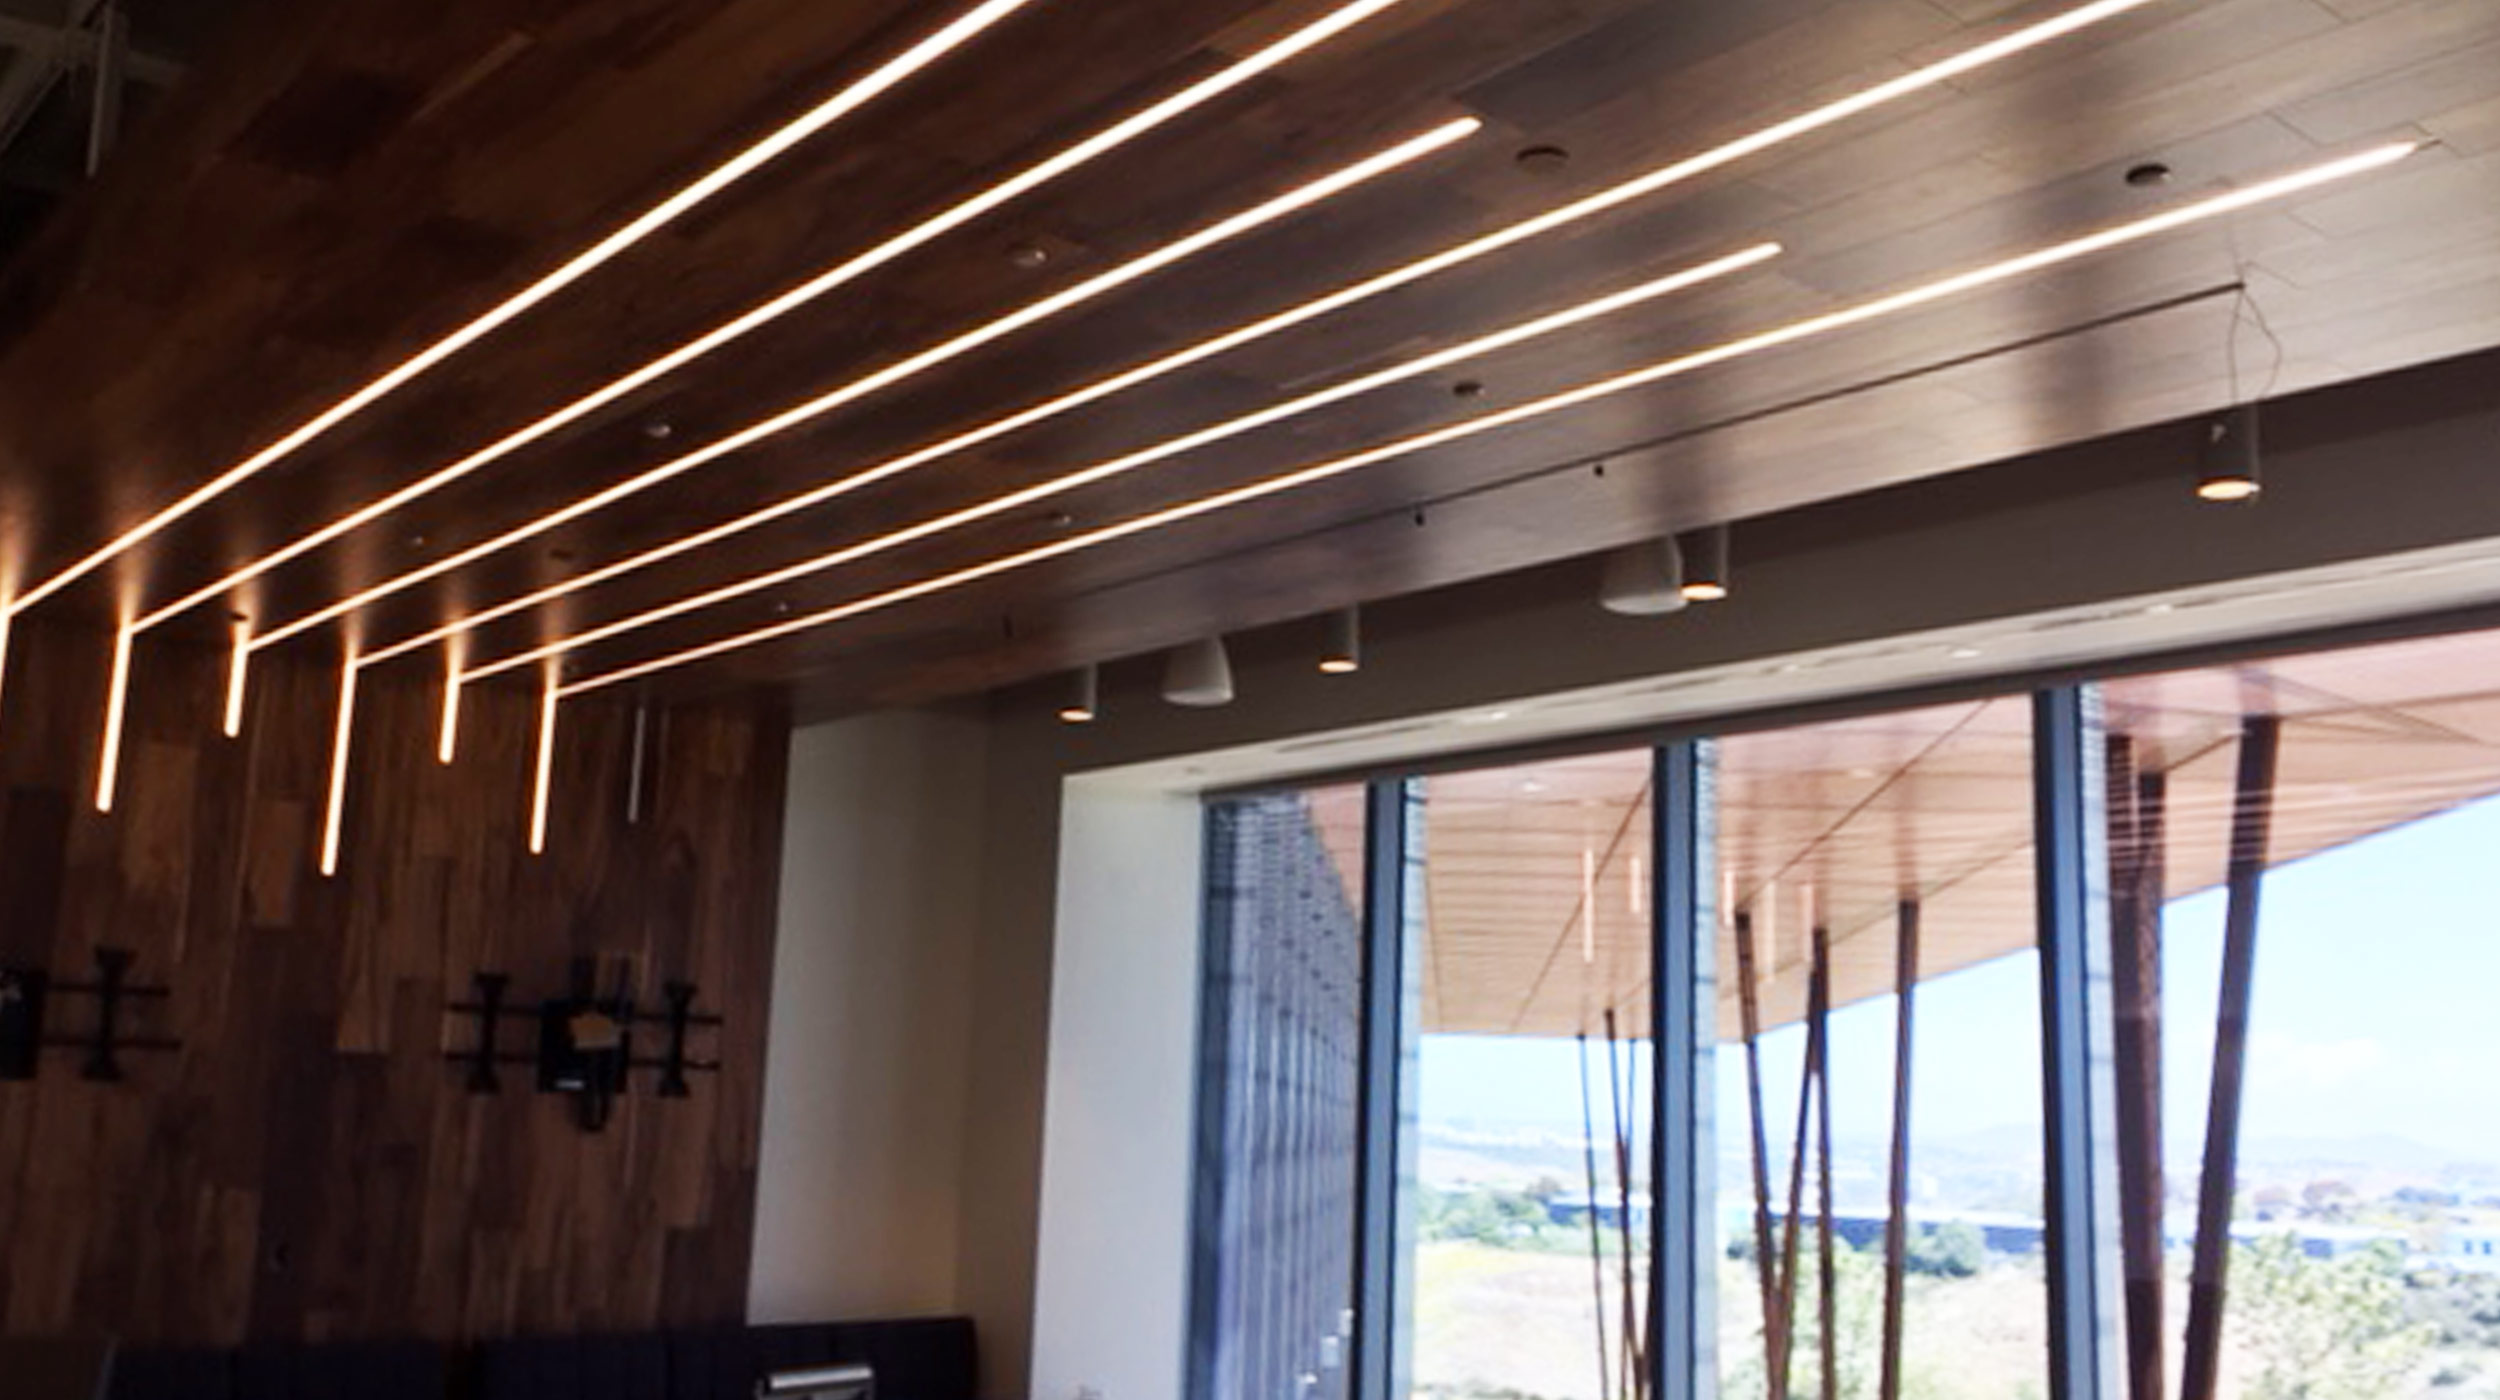 Airelight™ Linear ES 1.0 Installed with Channel and Diffuser